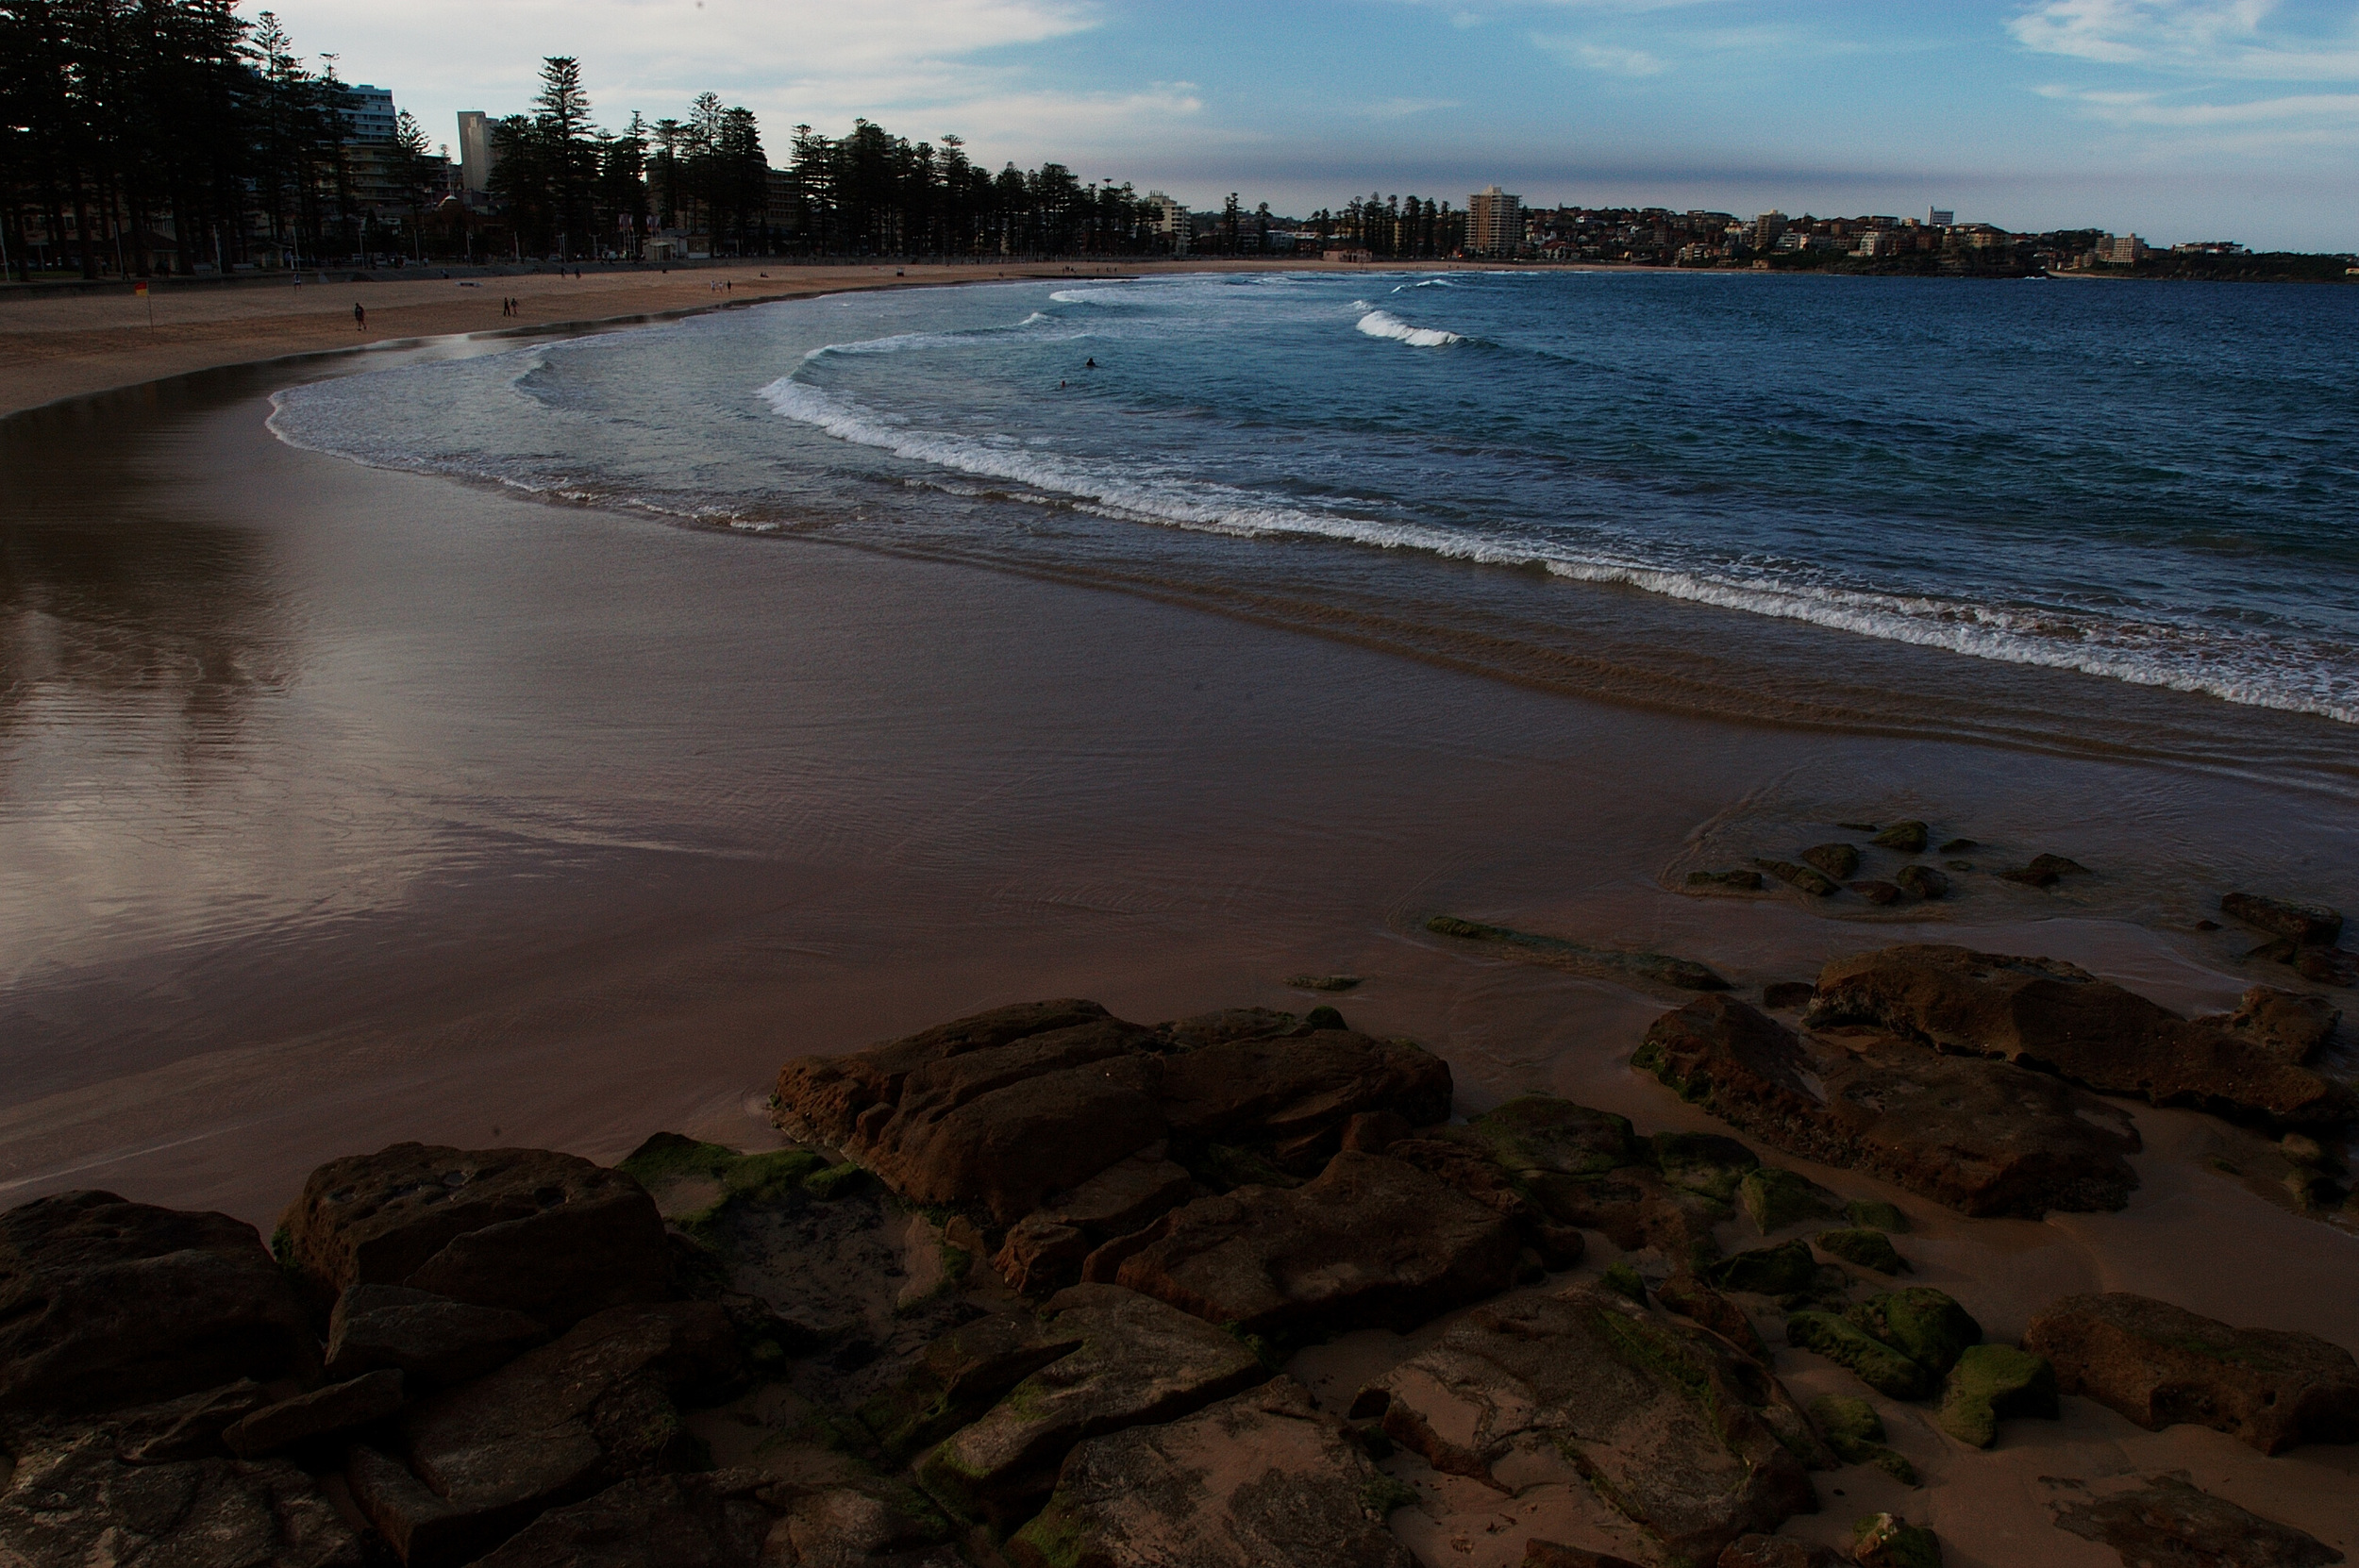 Manly had a beautiful beach strip with lots of hotels, shops and restaurants.